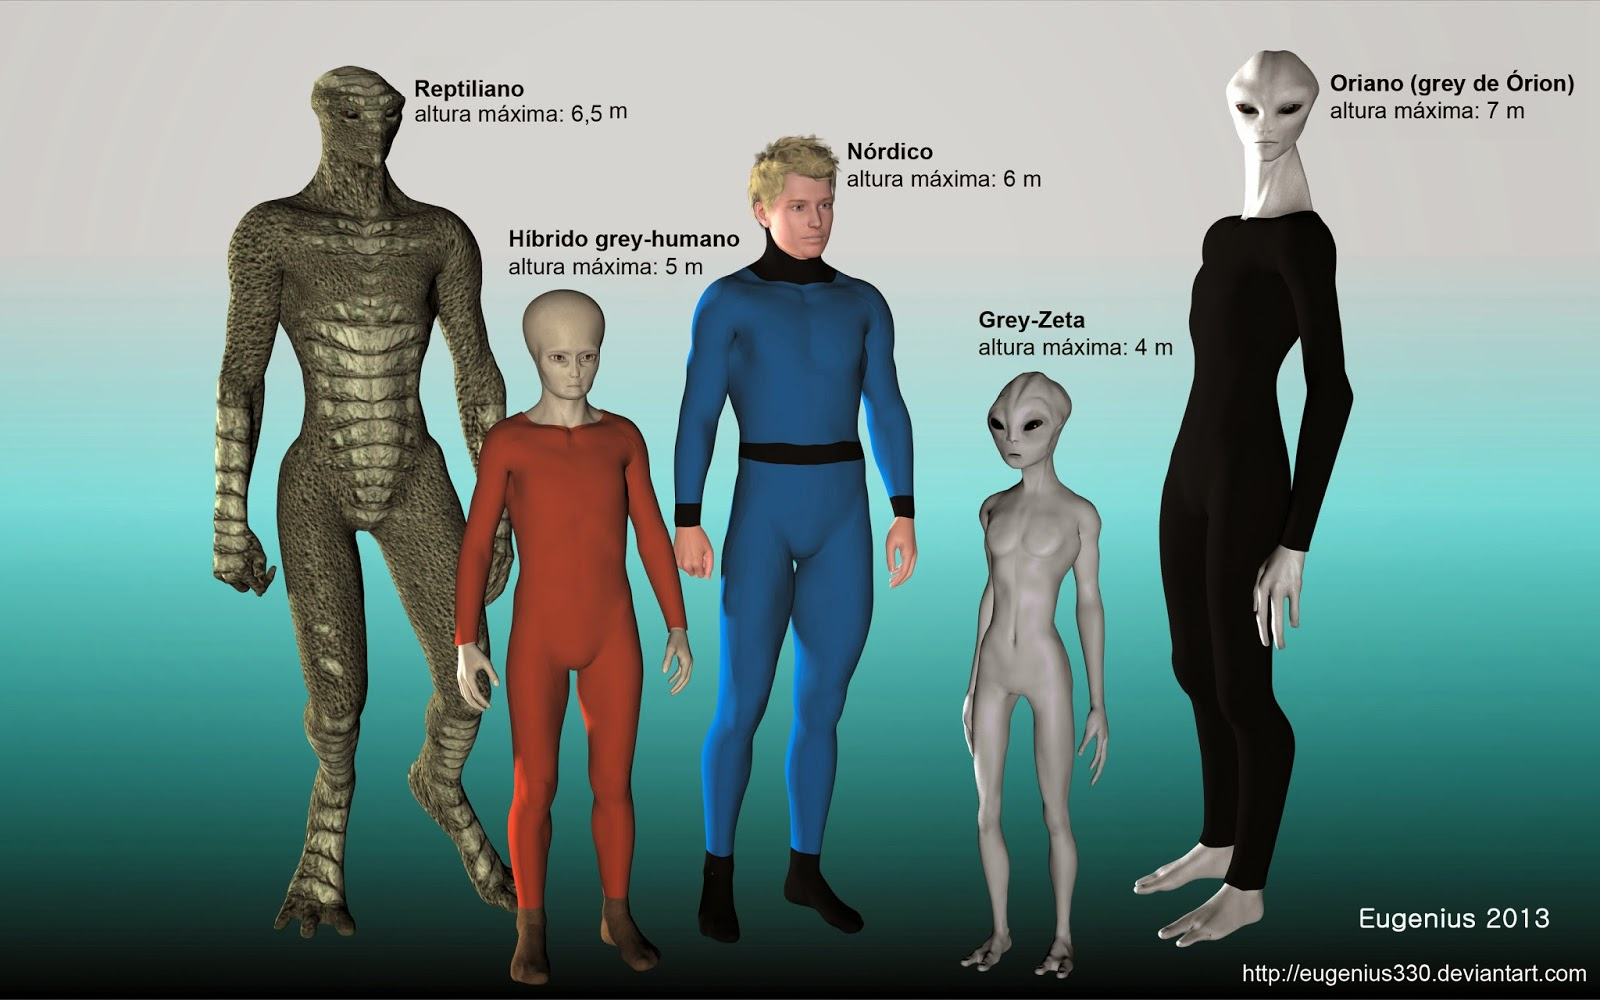 aliens extraterrestrial life and different species Aliens are often depicted as monsters in science fiction, like in the film alien as shown above, but much of the complex life that develops on other planets could look very similar to the.